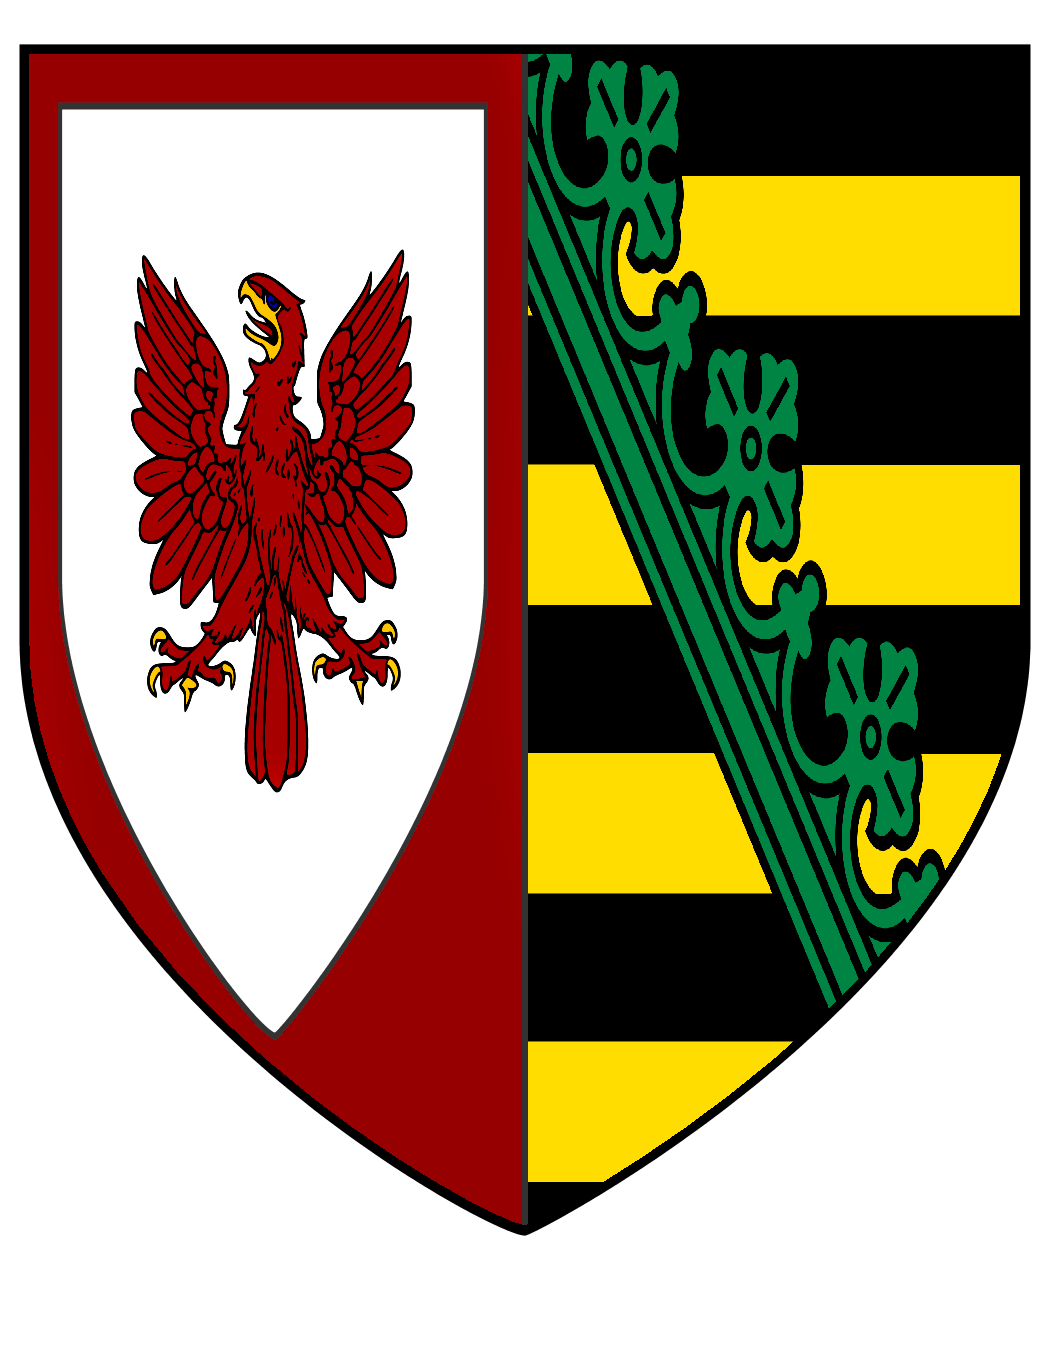 coat_of_arms_Theoderic_von_Wettin.png